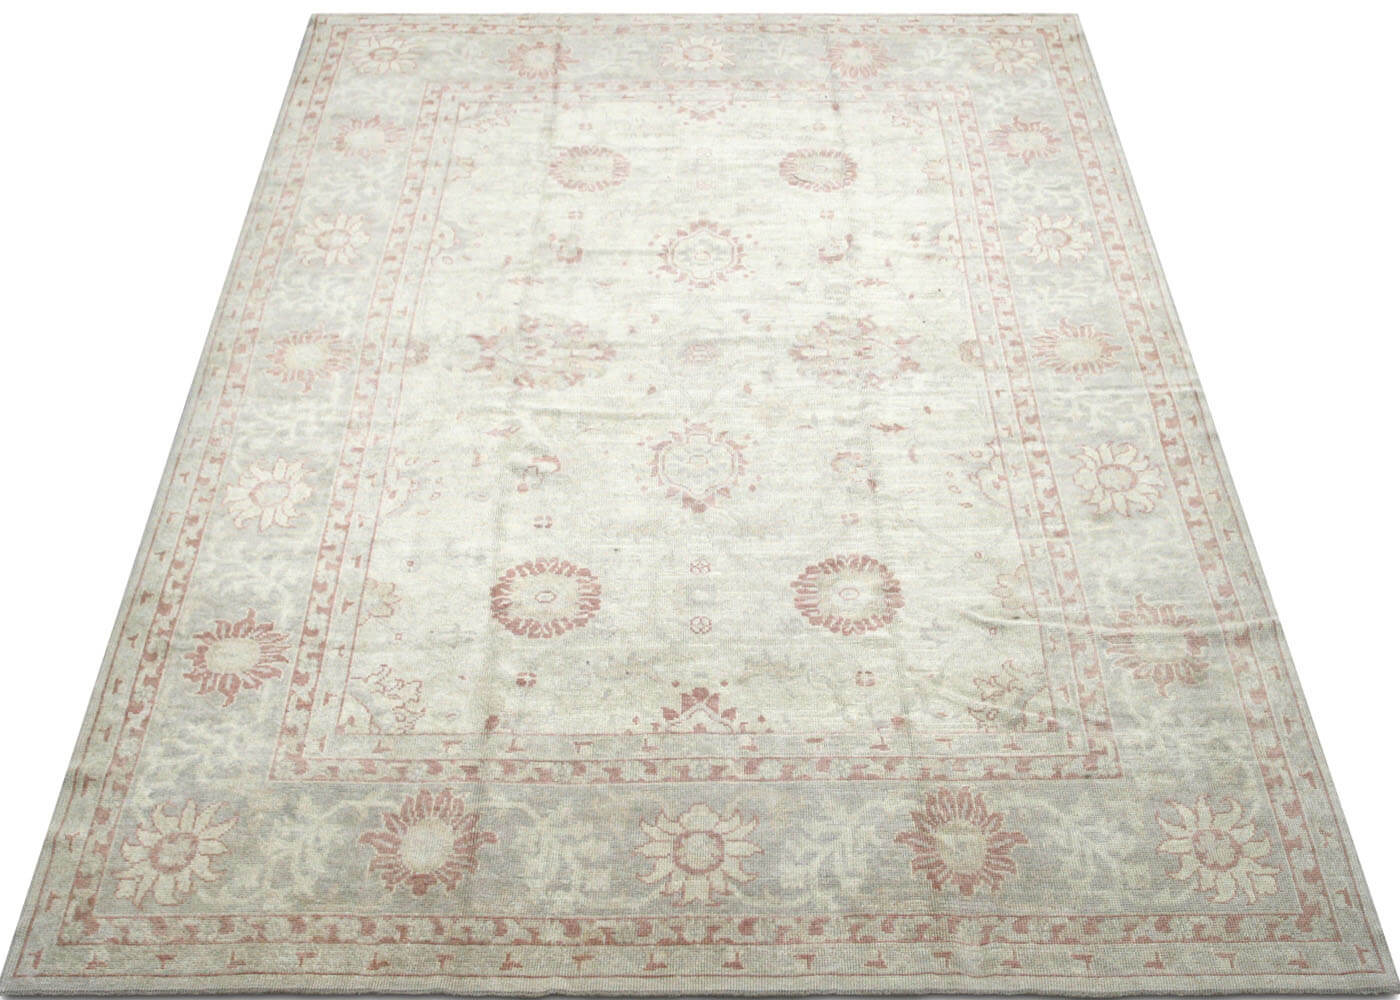 "Recently Woven Turkish Oushak Carpet - 9'2"" x 12'5"""